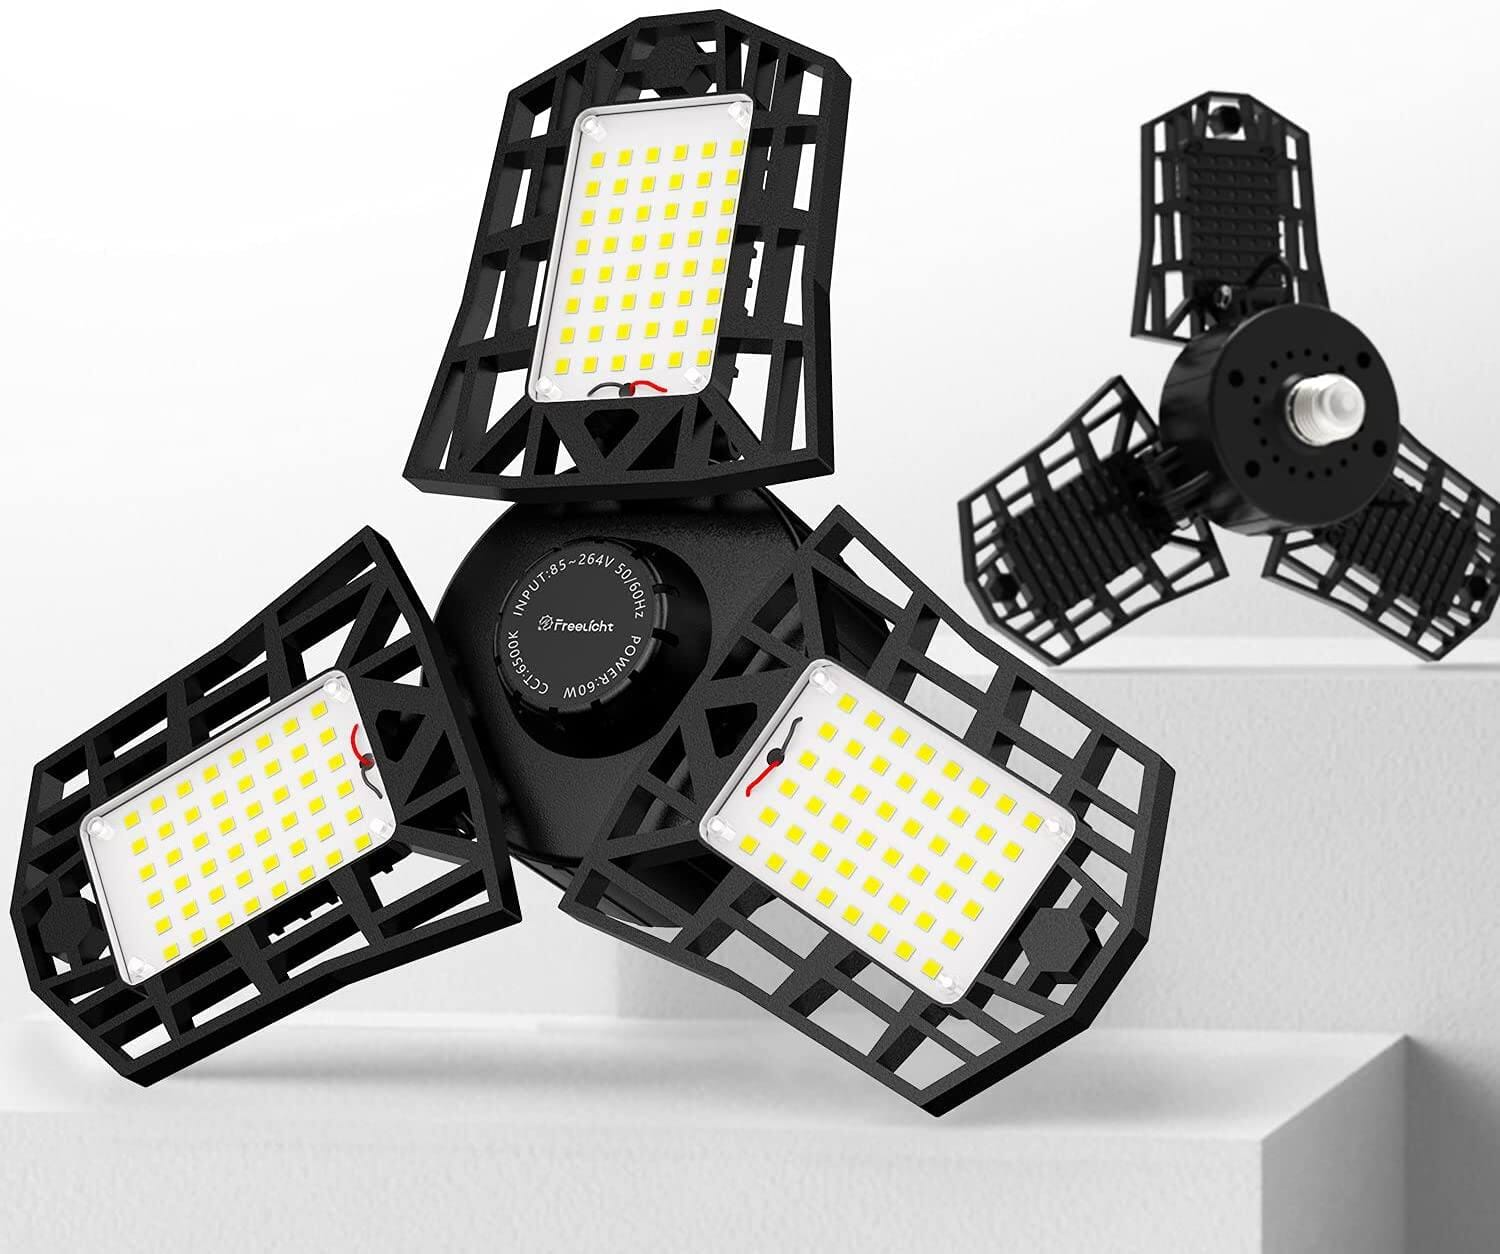 2-Pack LED Garage Light(60W 6000LM 6500K) w/ Multi-Position Panels for $19.49 + Free Shipping